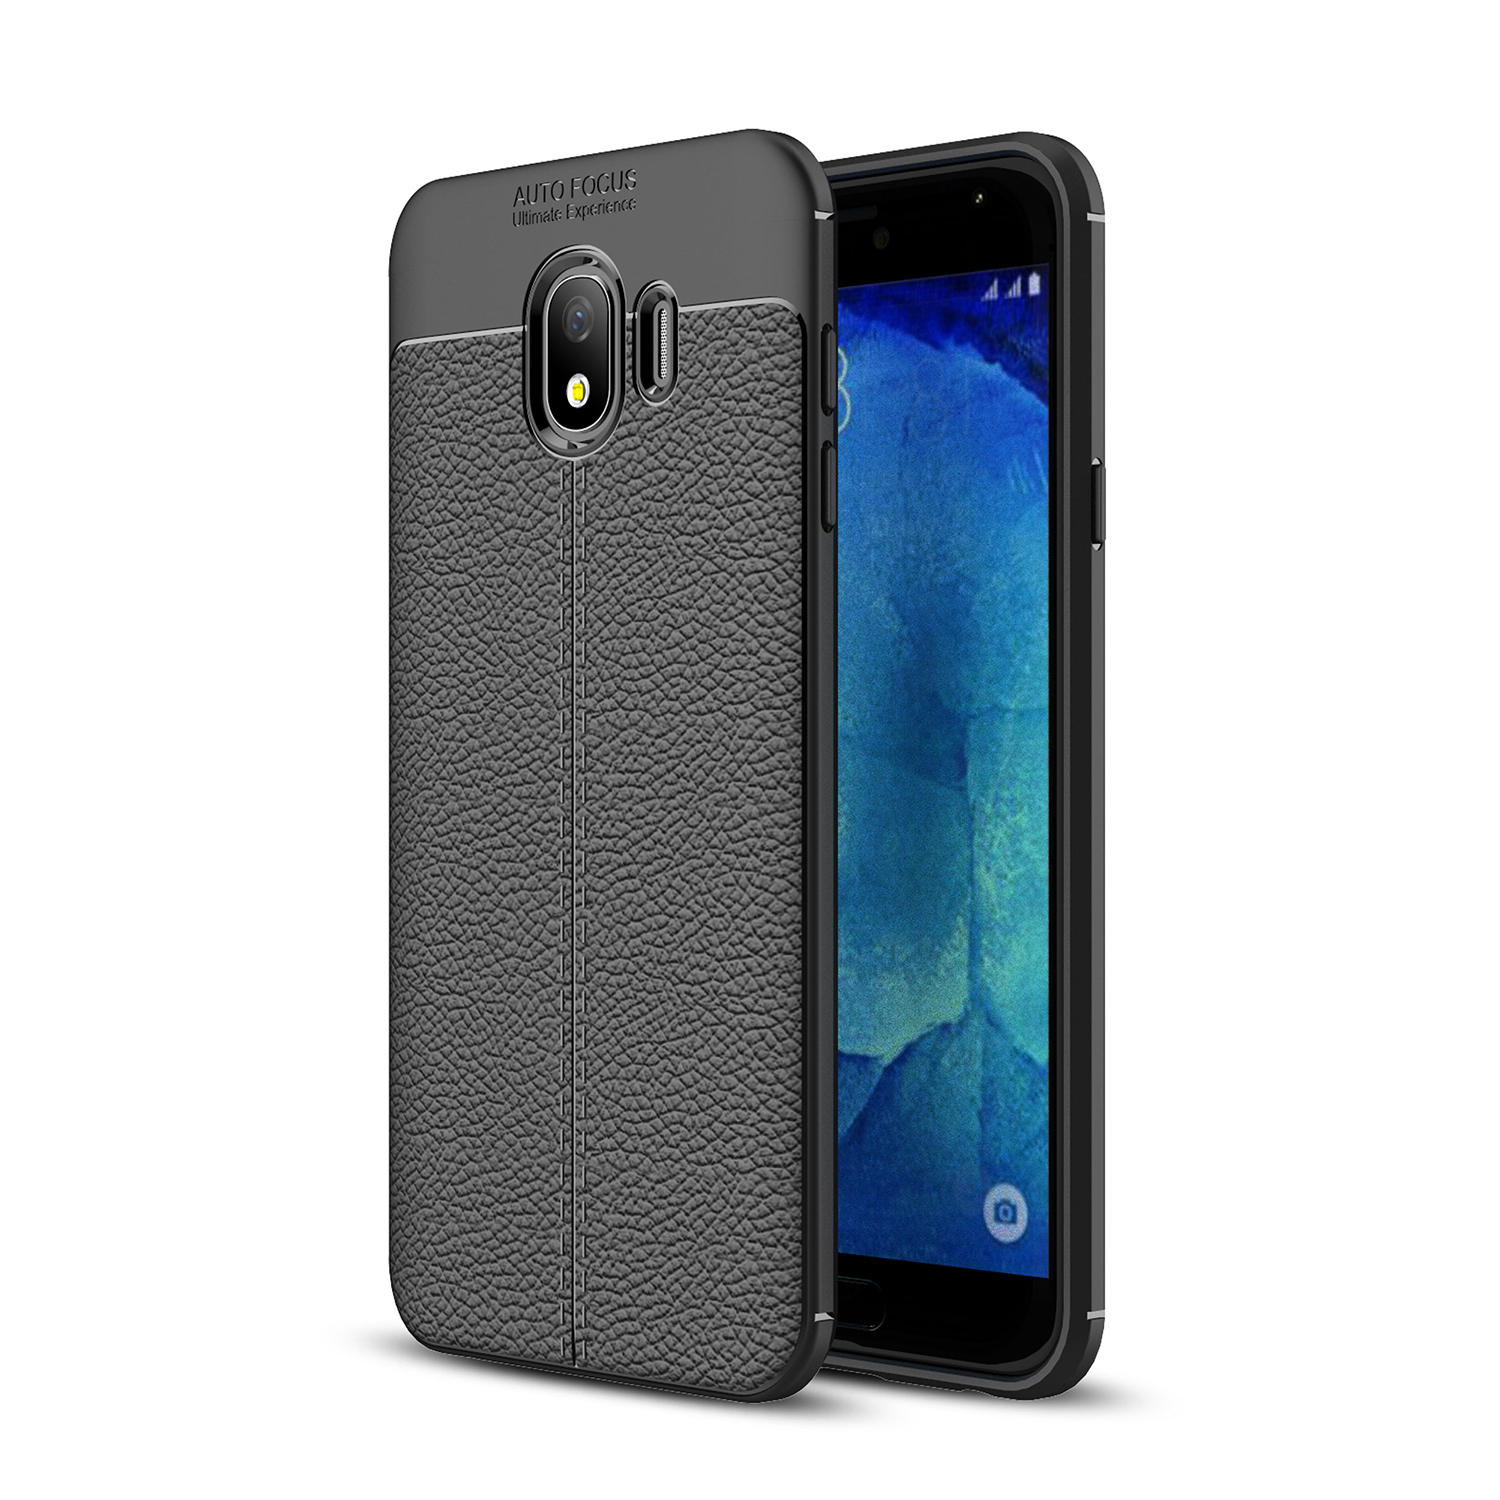 Bakeey Litchi Leather Soft TPU Housse de protection pour Samsung Galaxy J4 2018 EU Version